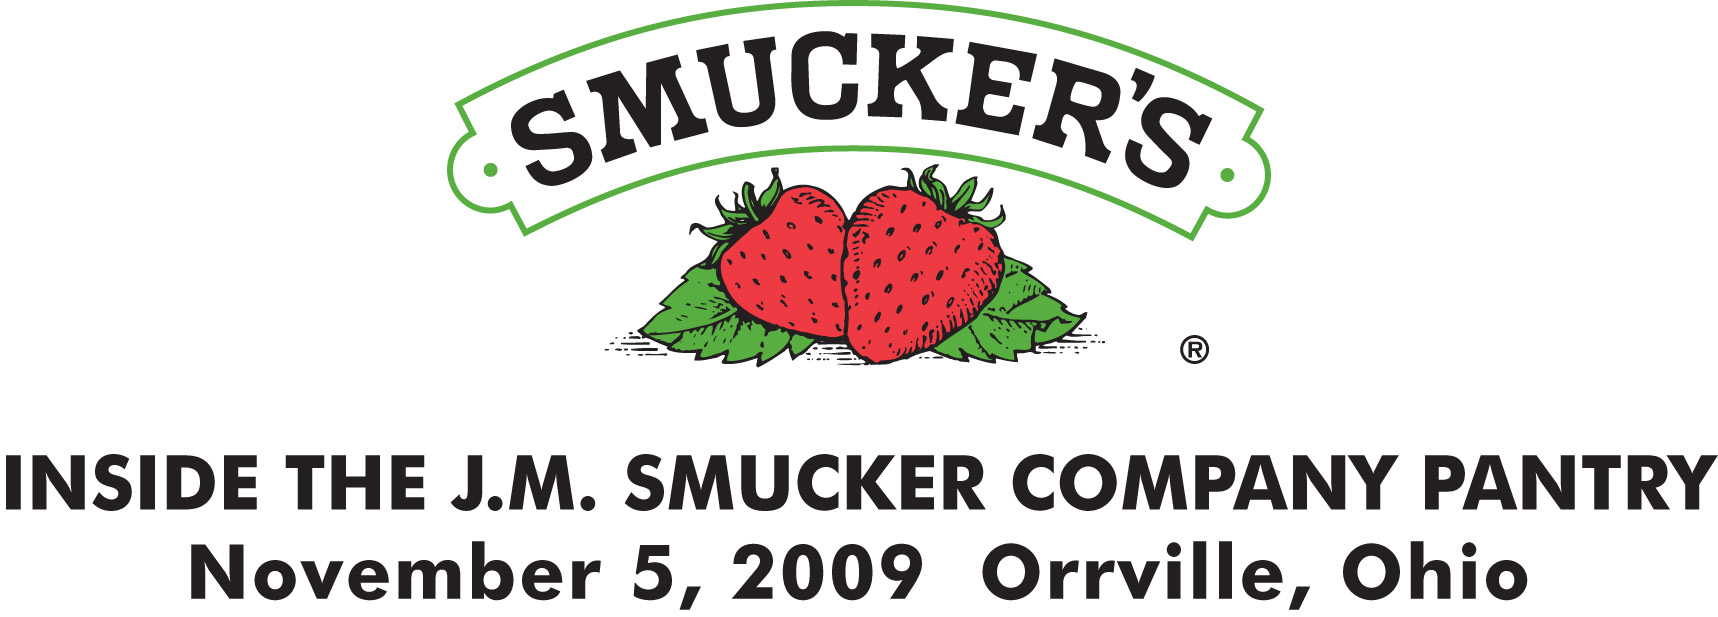 Smuckers Logos.